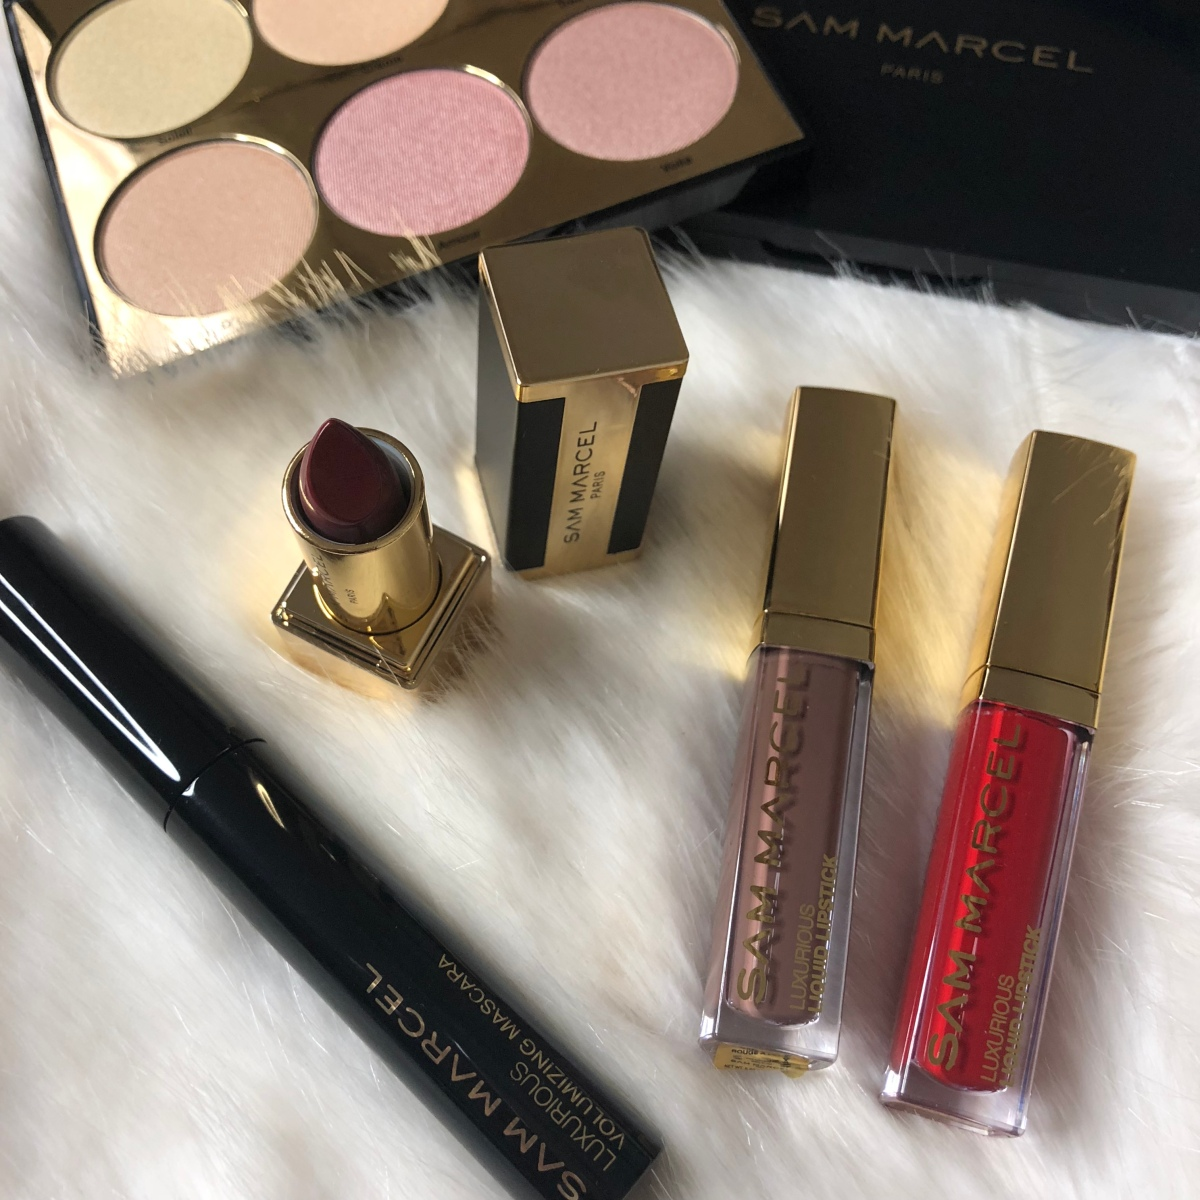 Discover Sam Marcel makeup with me!